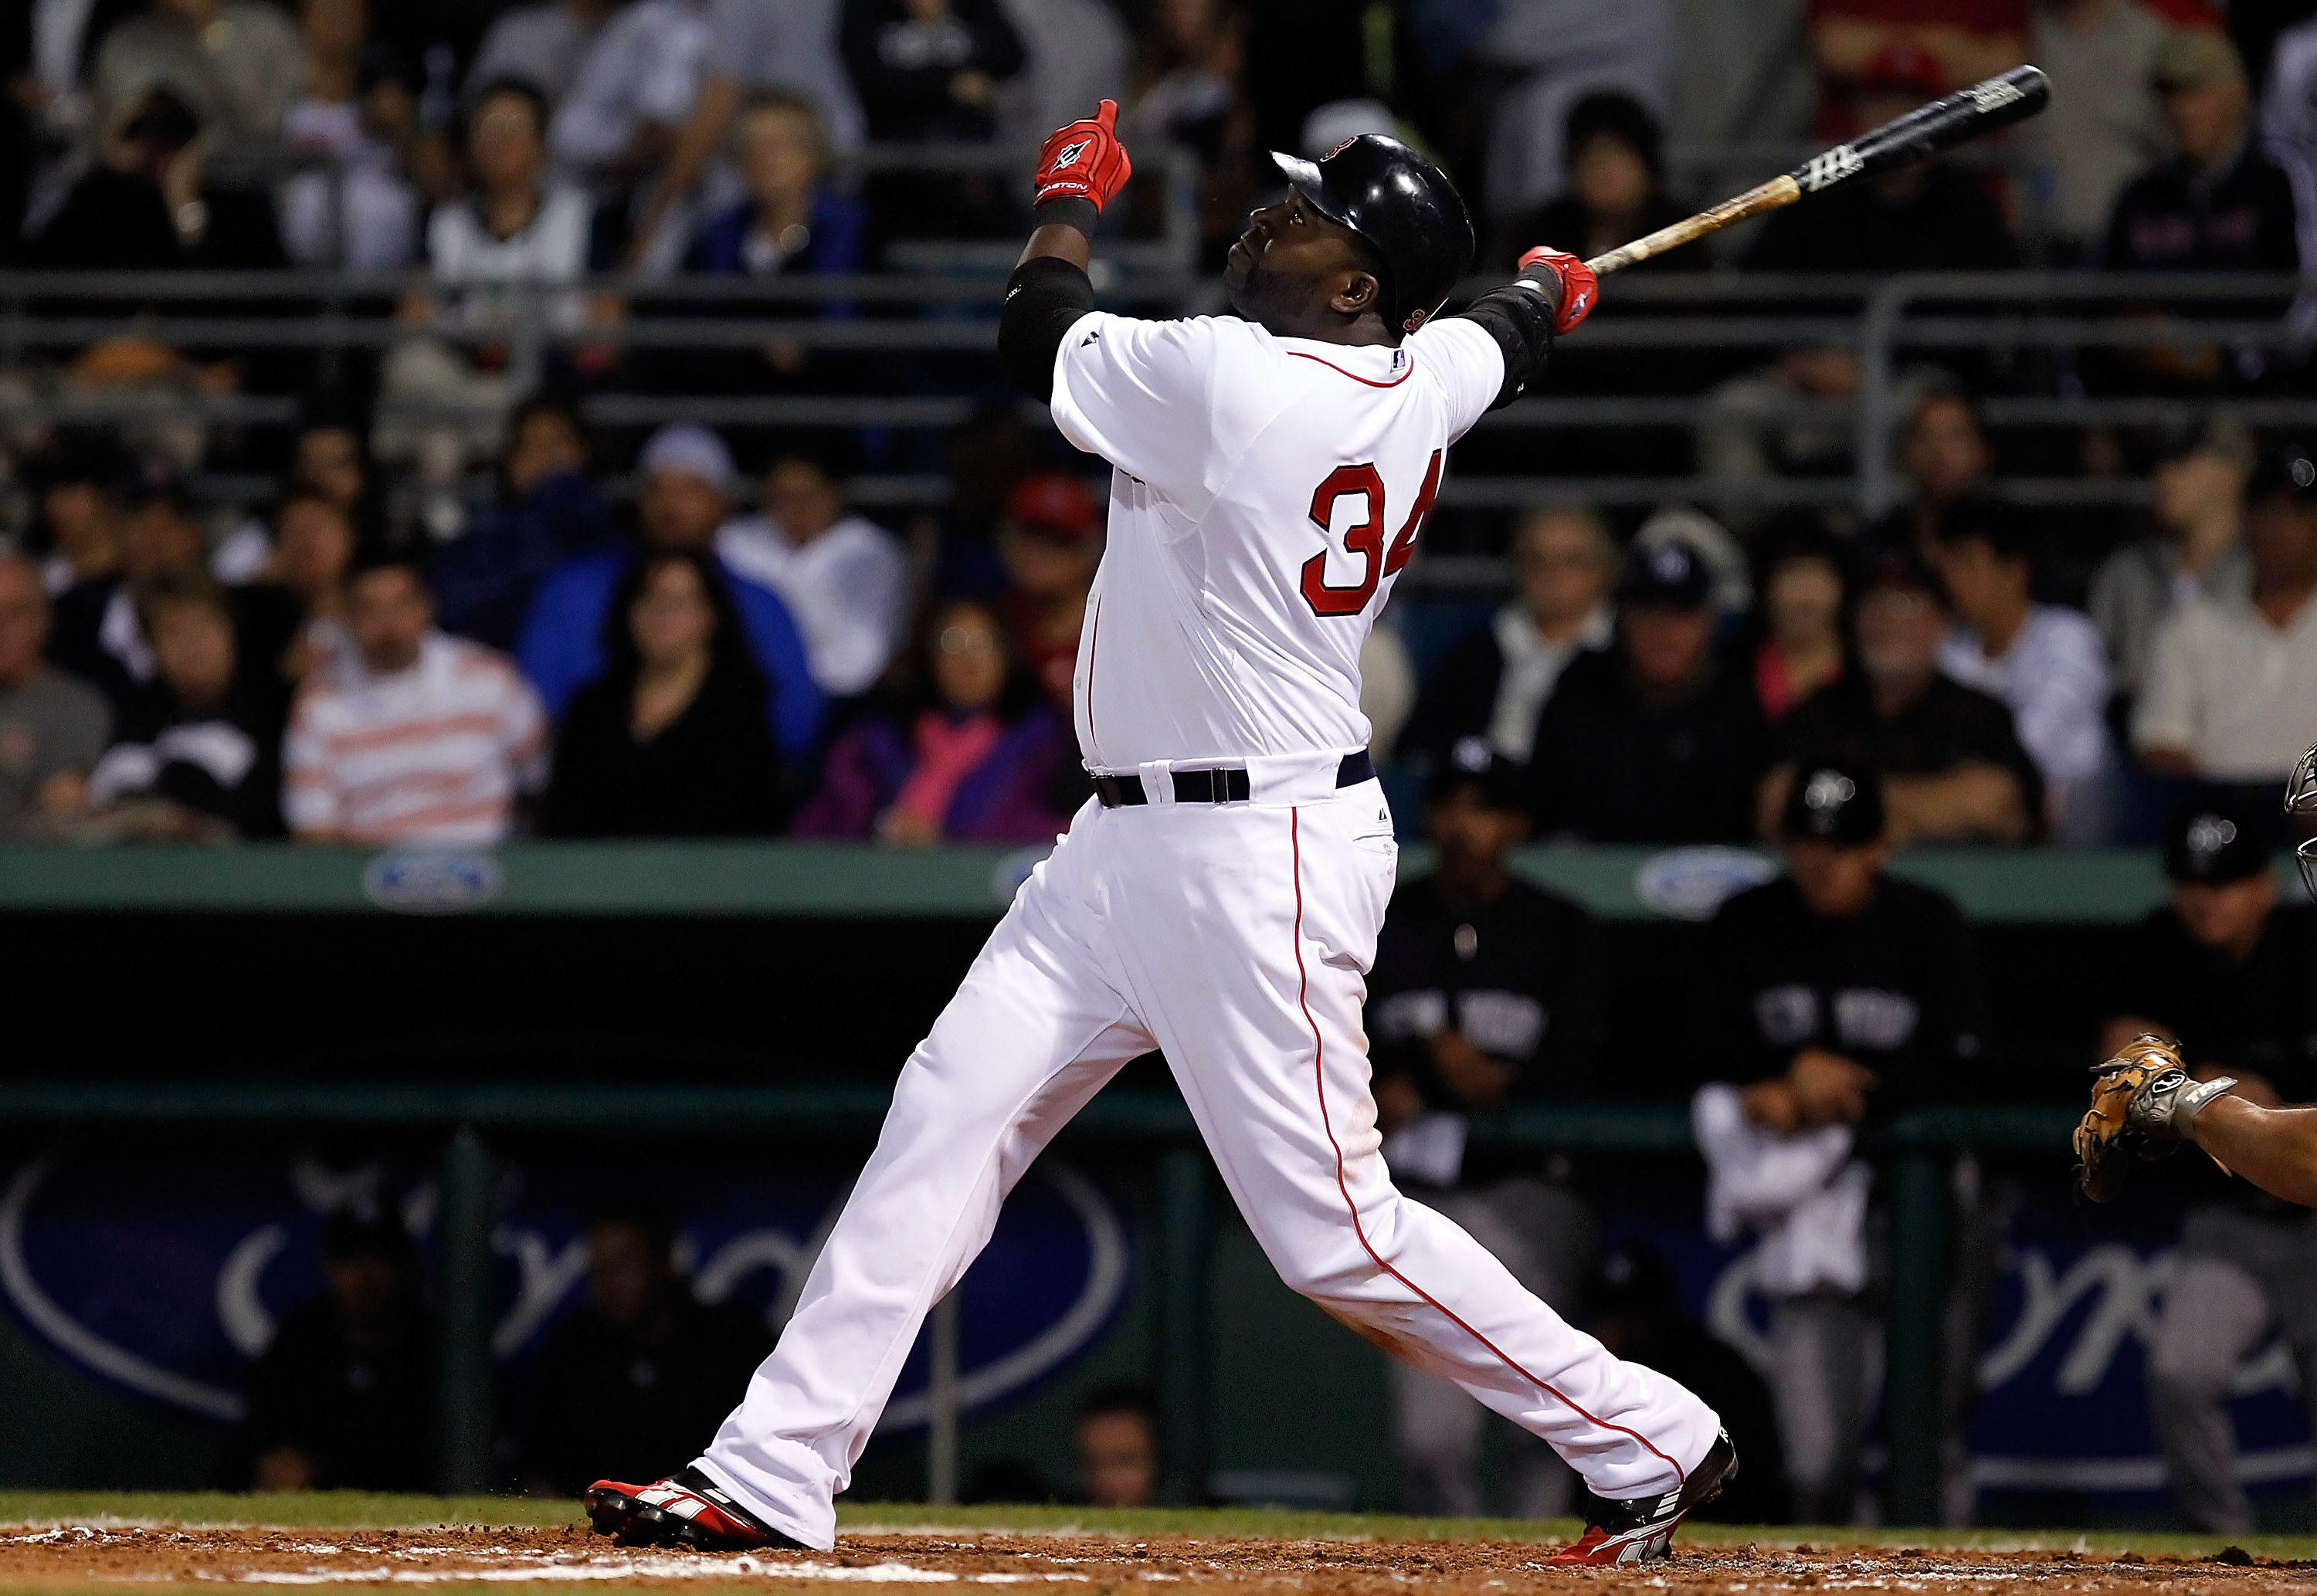 FORT MYERS, FL - MARCH 14:  Designated hitter David Ortiz #34 of the Boston Red Sox fouls off a pitch against the New York Yankees during a Grapefruit League Spring Training Game at City of Palms Park on March 14, 2011 in Fort Myers, Florida.  (Photo by J